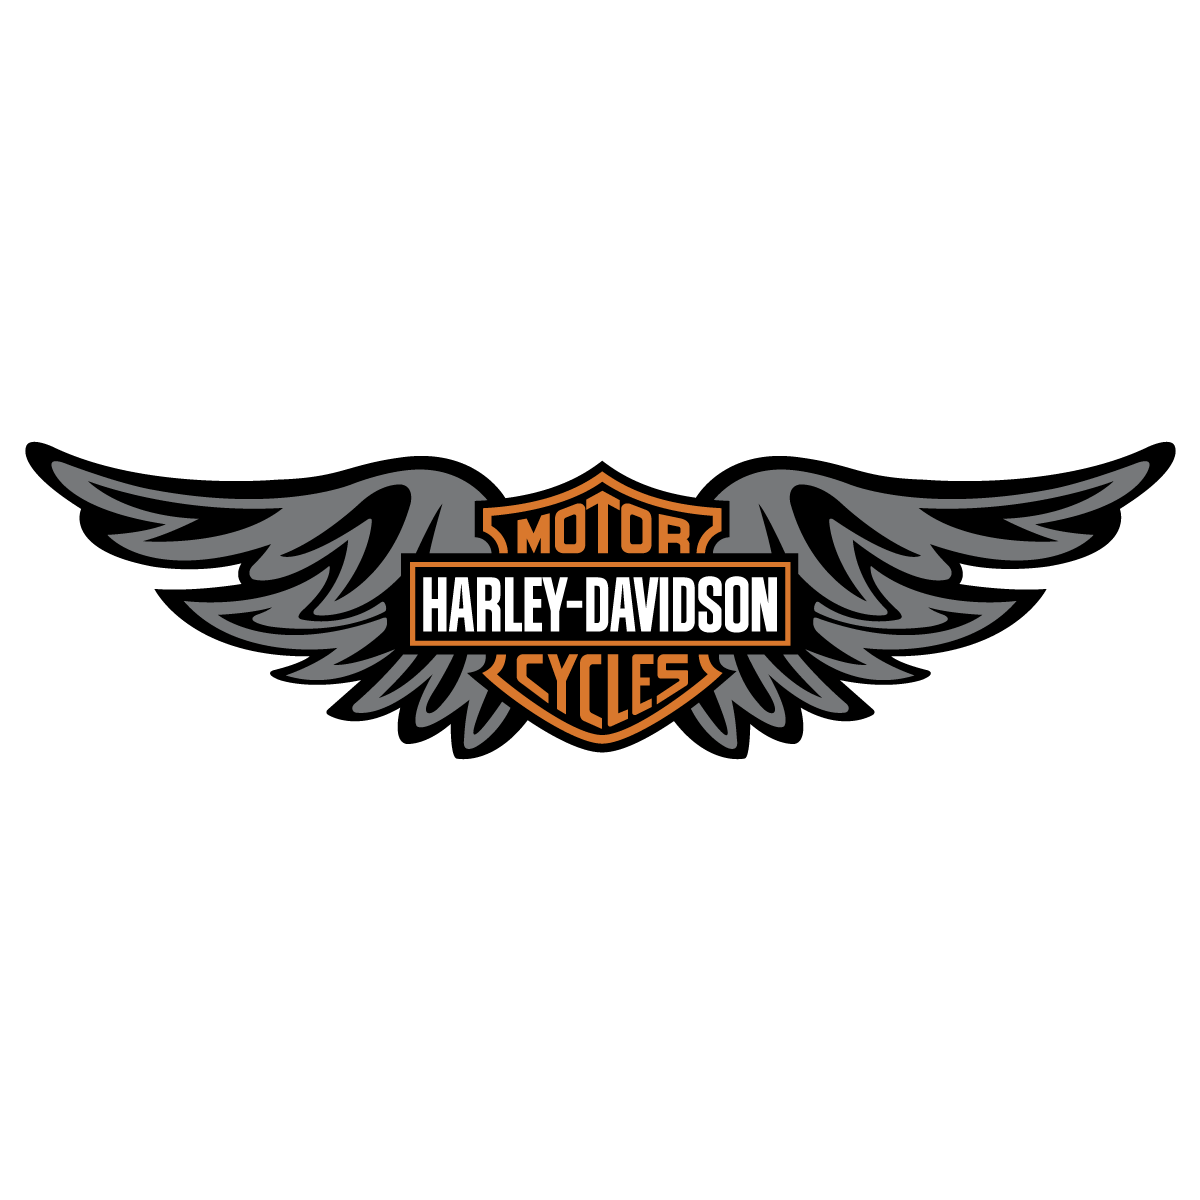 1200x1200 Harley Davidson Wings Logo Vector Decal Emblem Free Vector